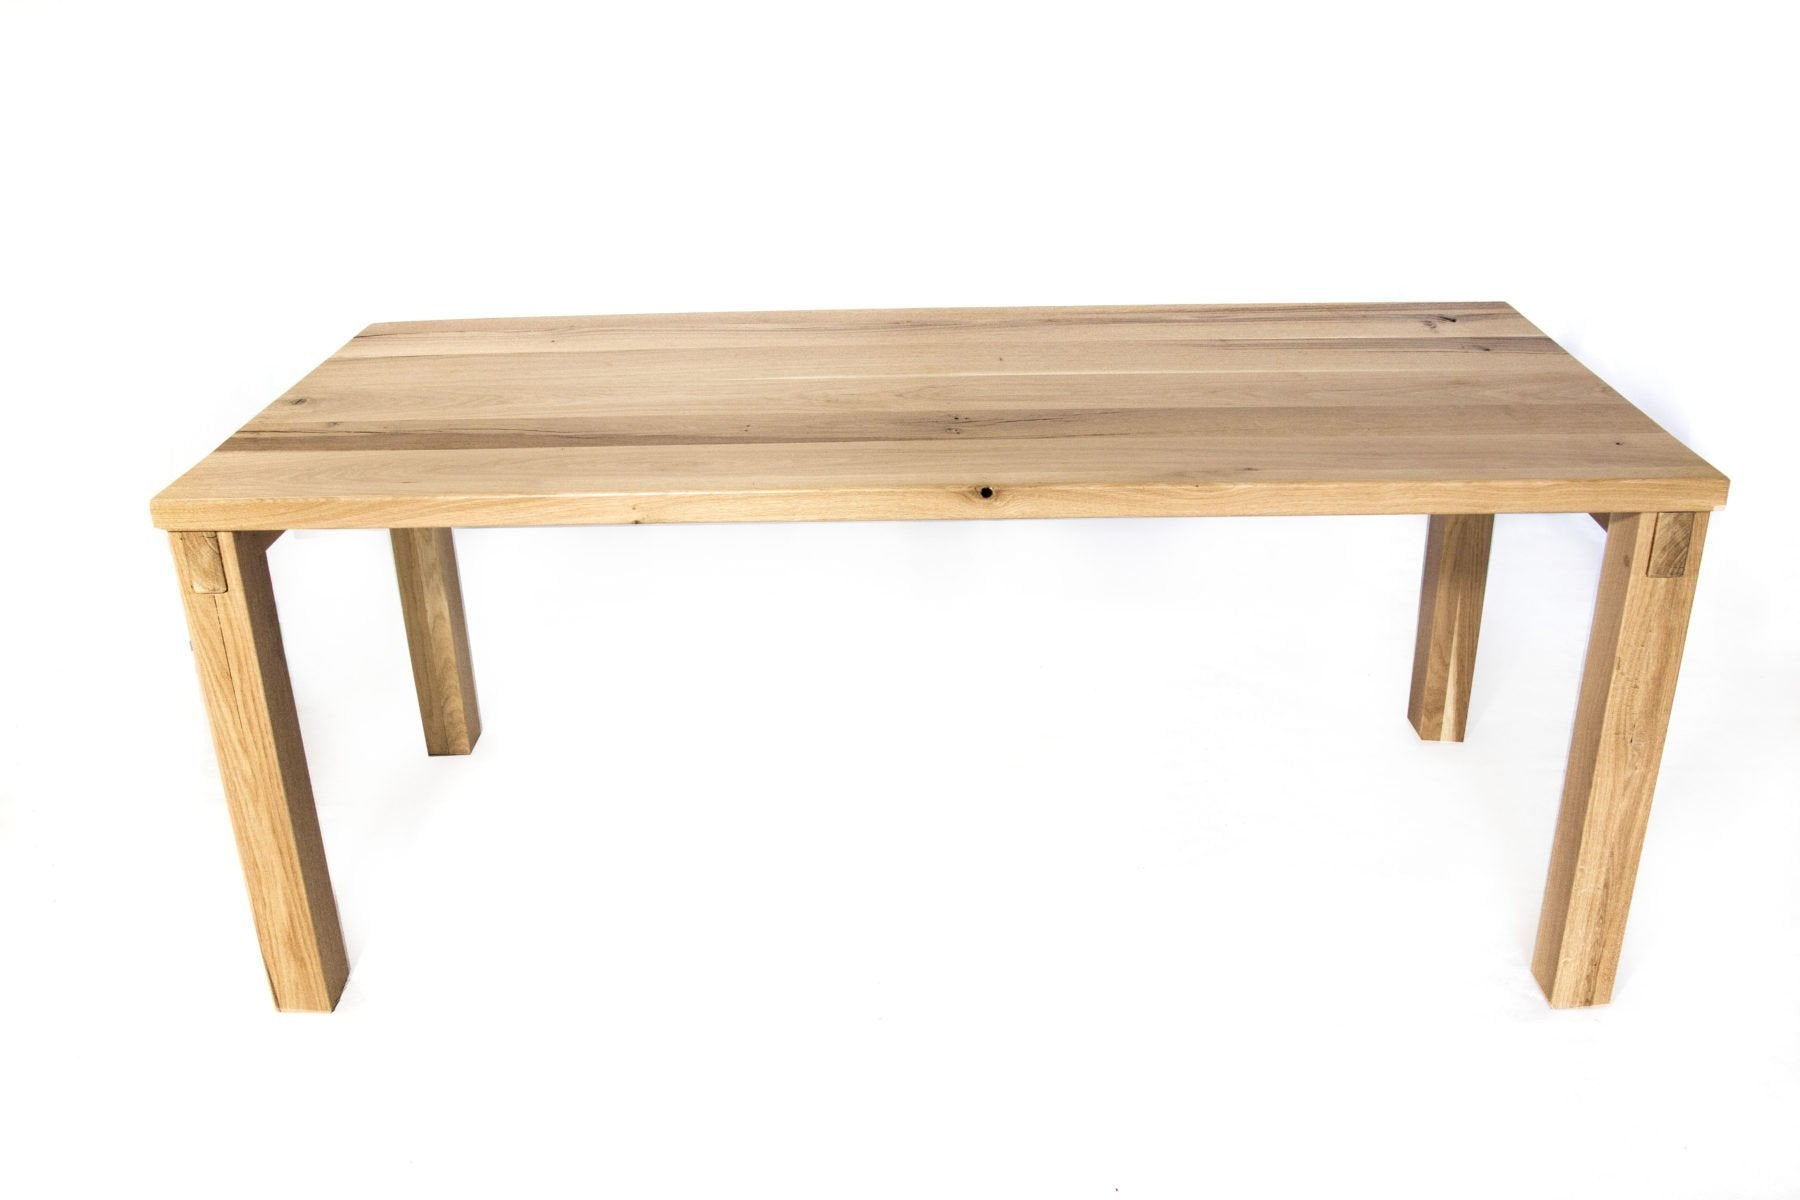 contemporary oak dining table contemporary oak dining table - Contemporary Oak Dining Table